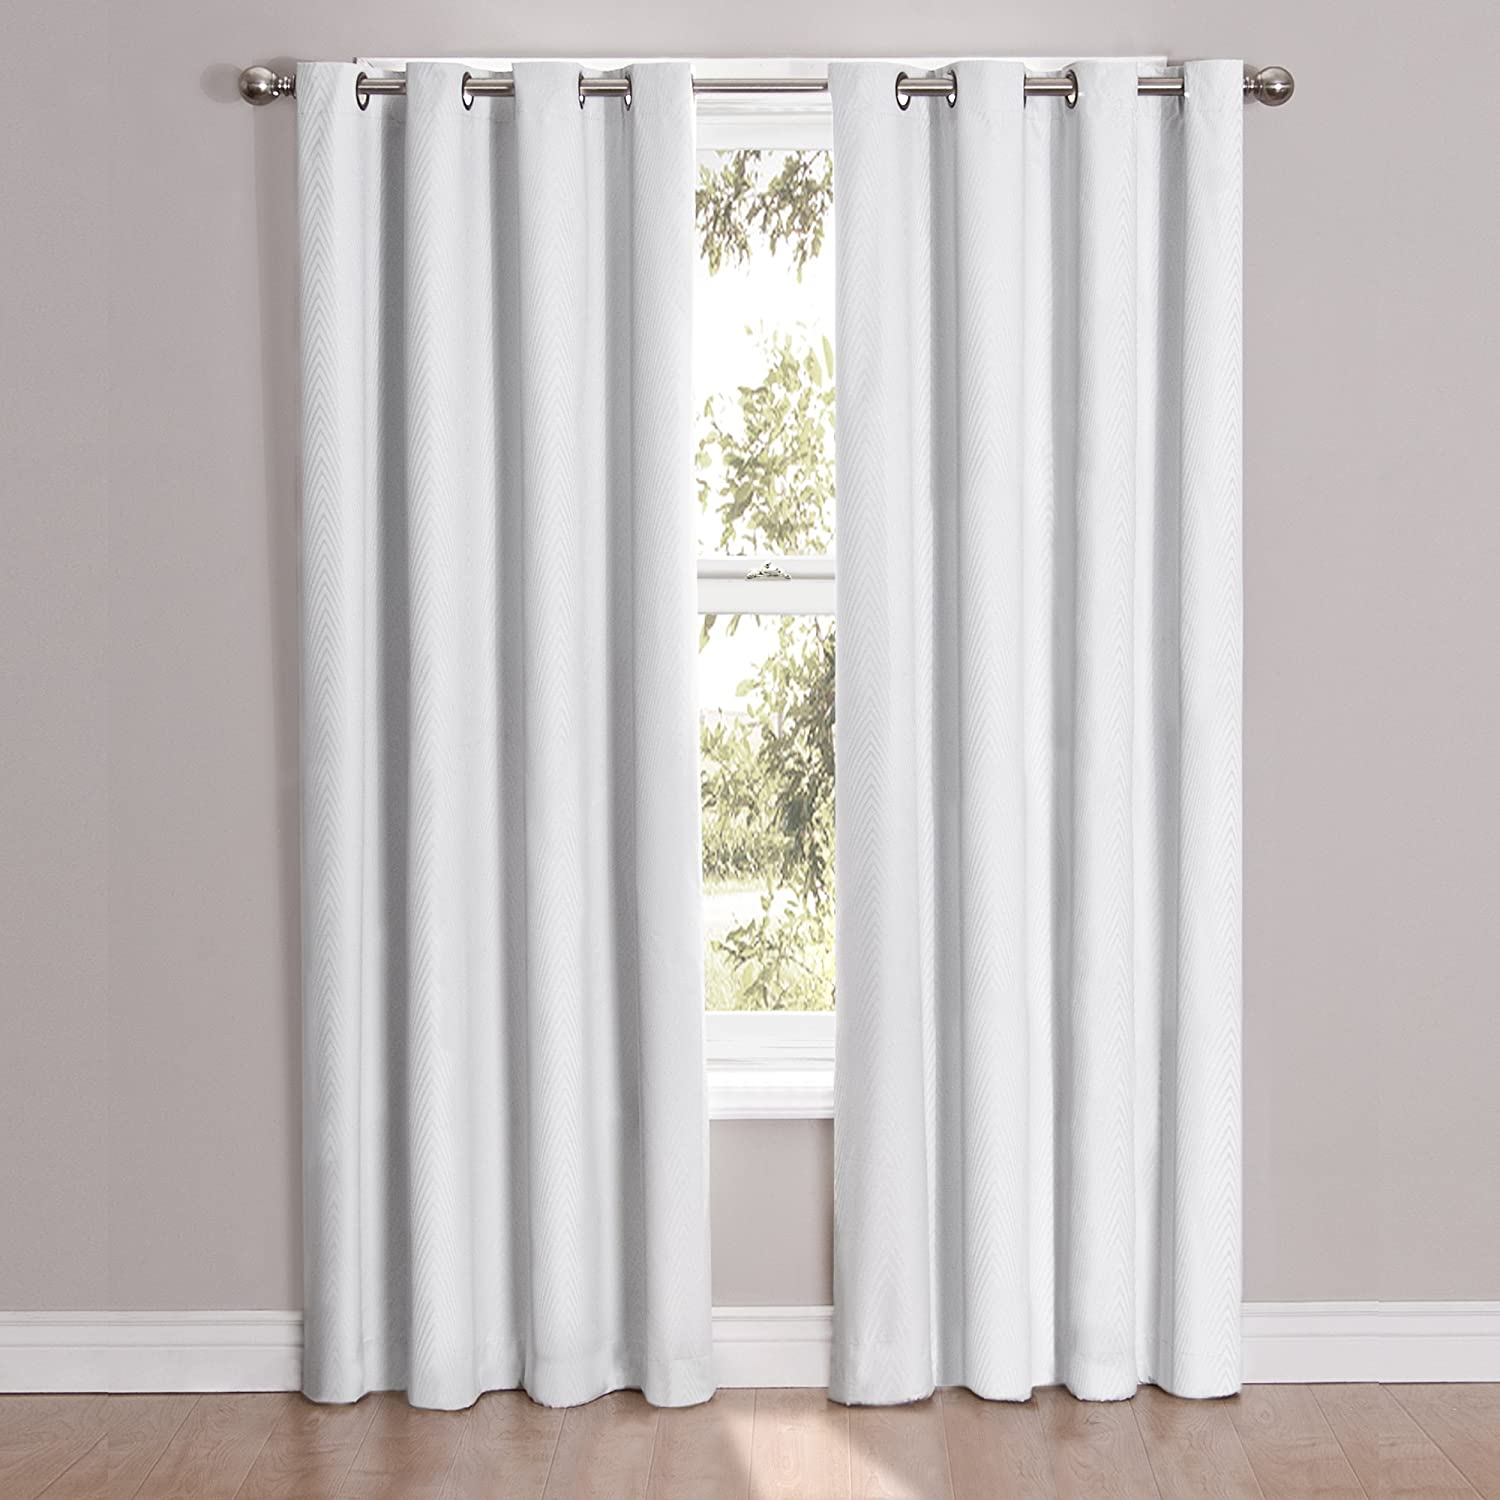 of exciting amazonthermal tag remarkable by five amazon images design parts curtainsal tags full curtainsthermal curtain thermal size attending bedroom curtains at